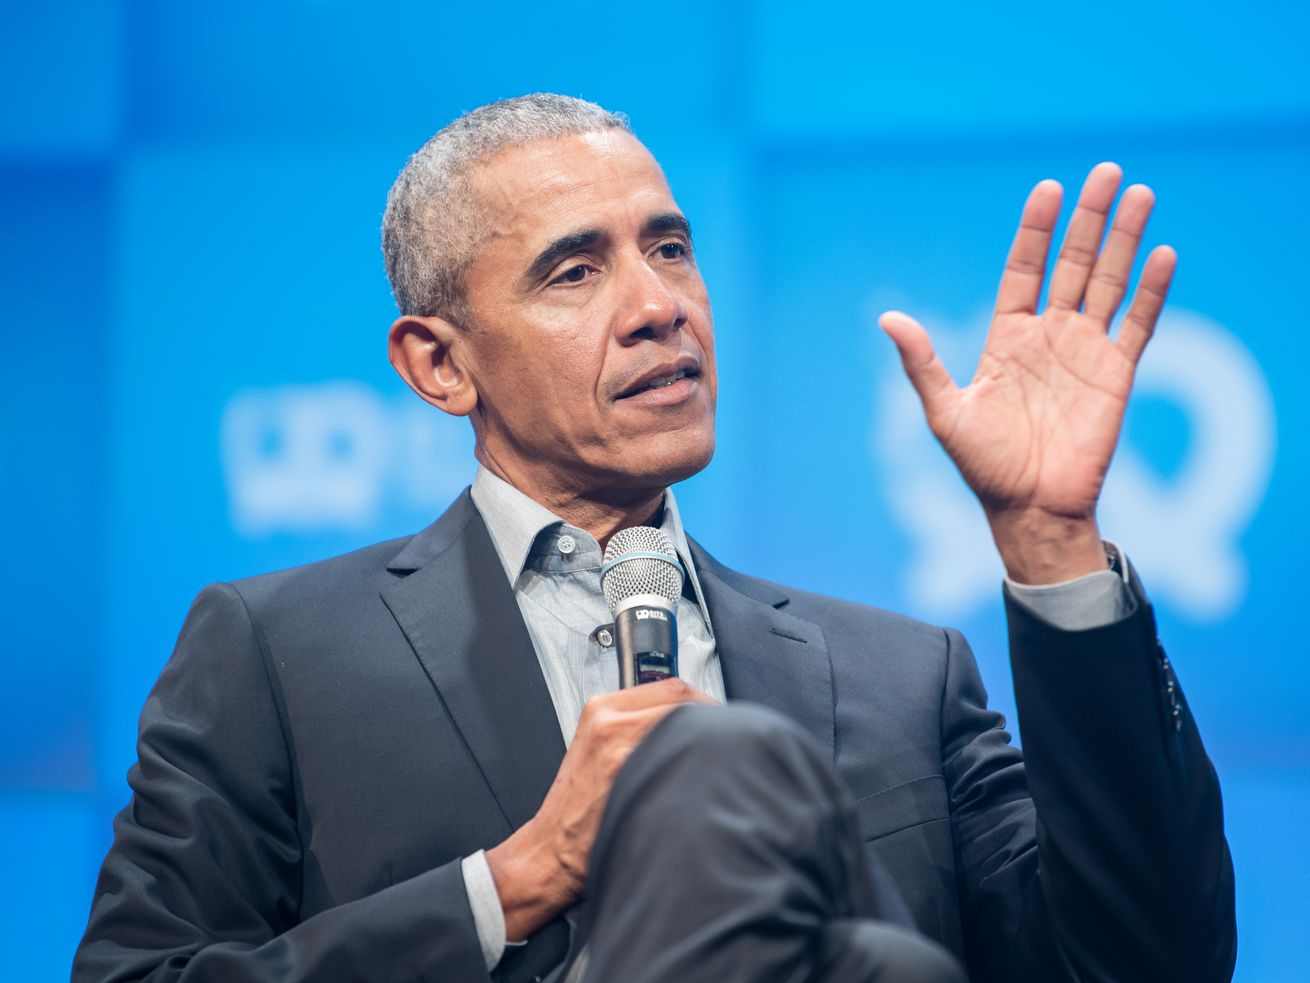 A seated Obama, in a dark suit and gray shirt similar to the one he wore for his 2020 HBCU commencement address, gestures with his left hand as he speaks into a microphone.